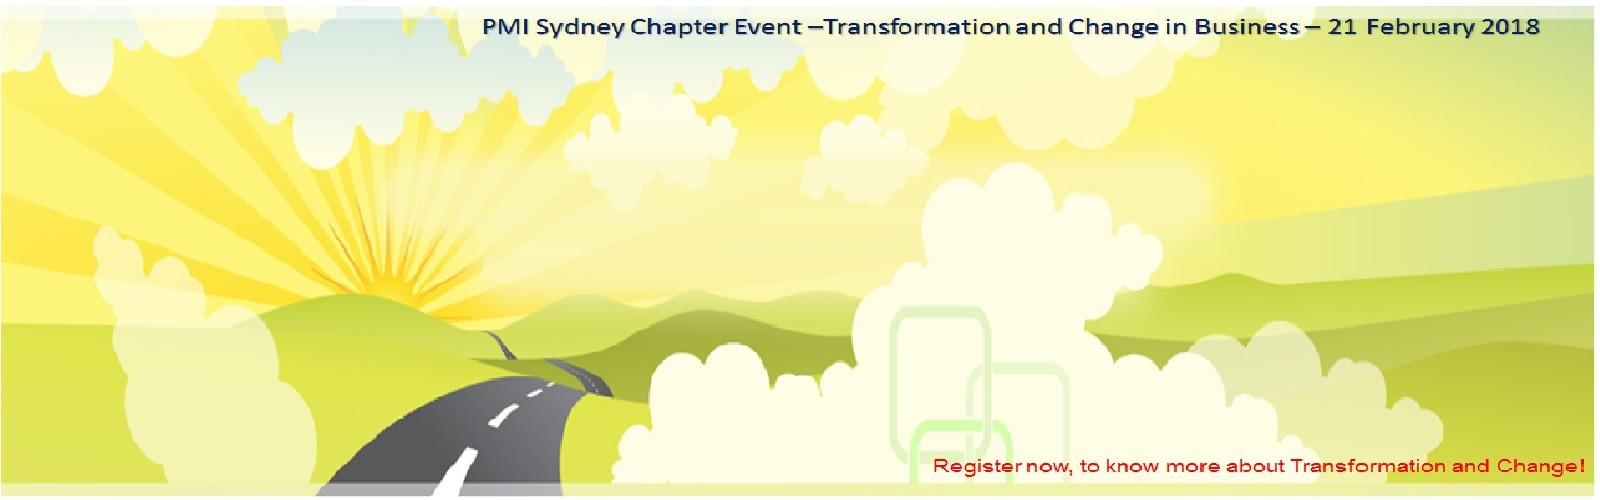 PMI Sydney Chapter Event –Transformation and Change in Business – 21 February 2018